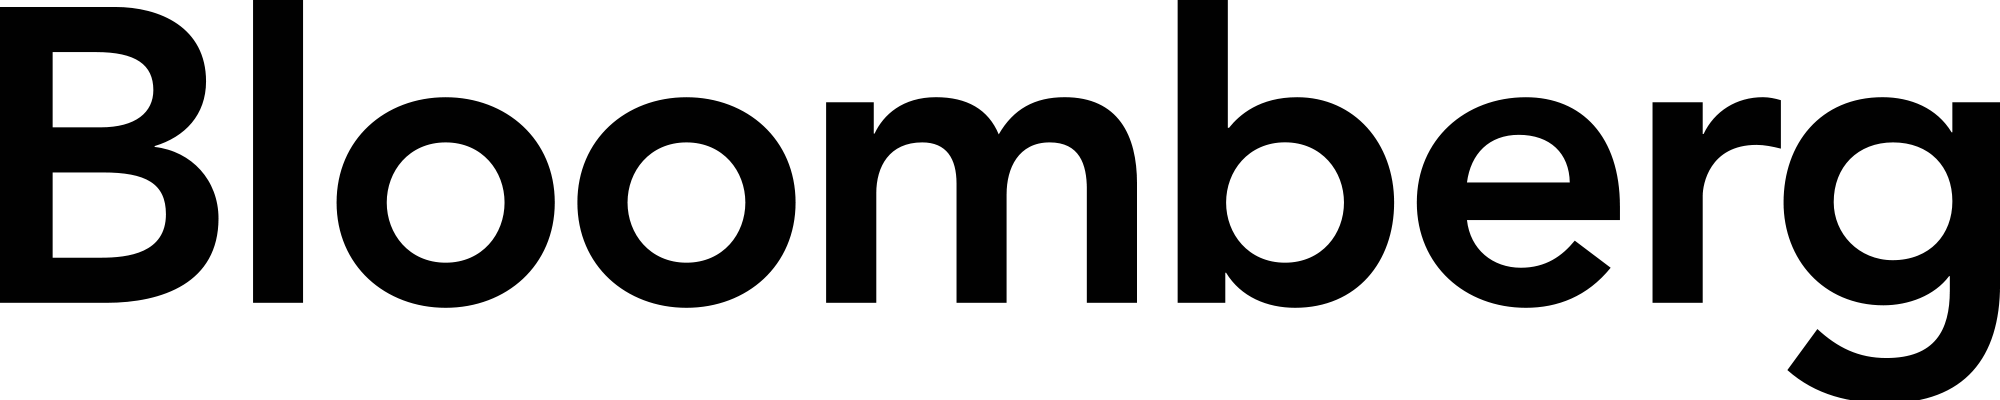 2000px-Bloomberg_logo.svg.png